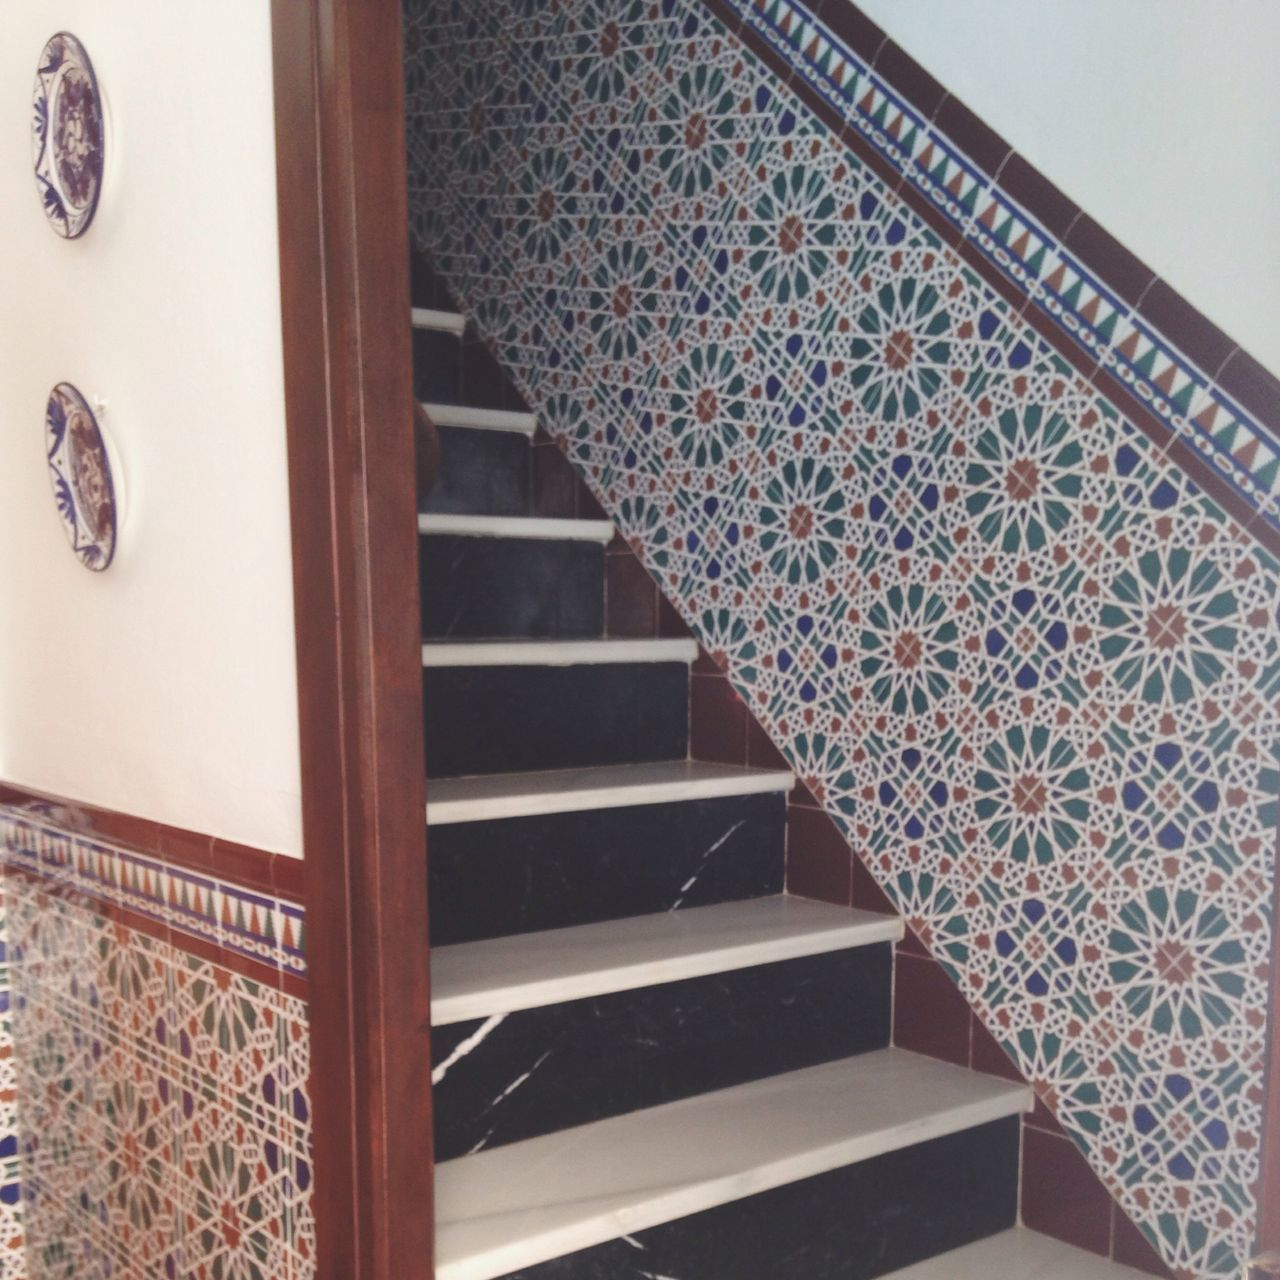 steps, staircase, design, steps and staircases, railing, indoors, pattern, architecture, no people, built structure, day, close-up